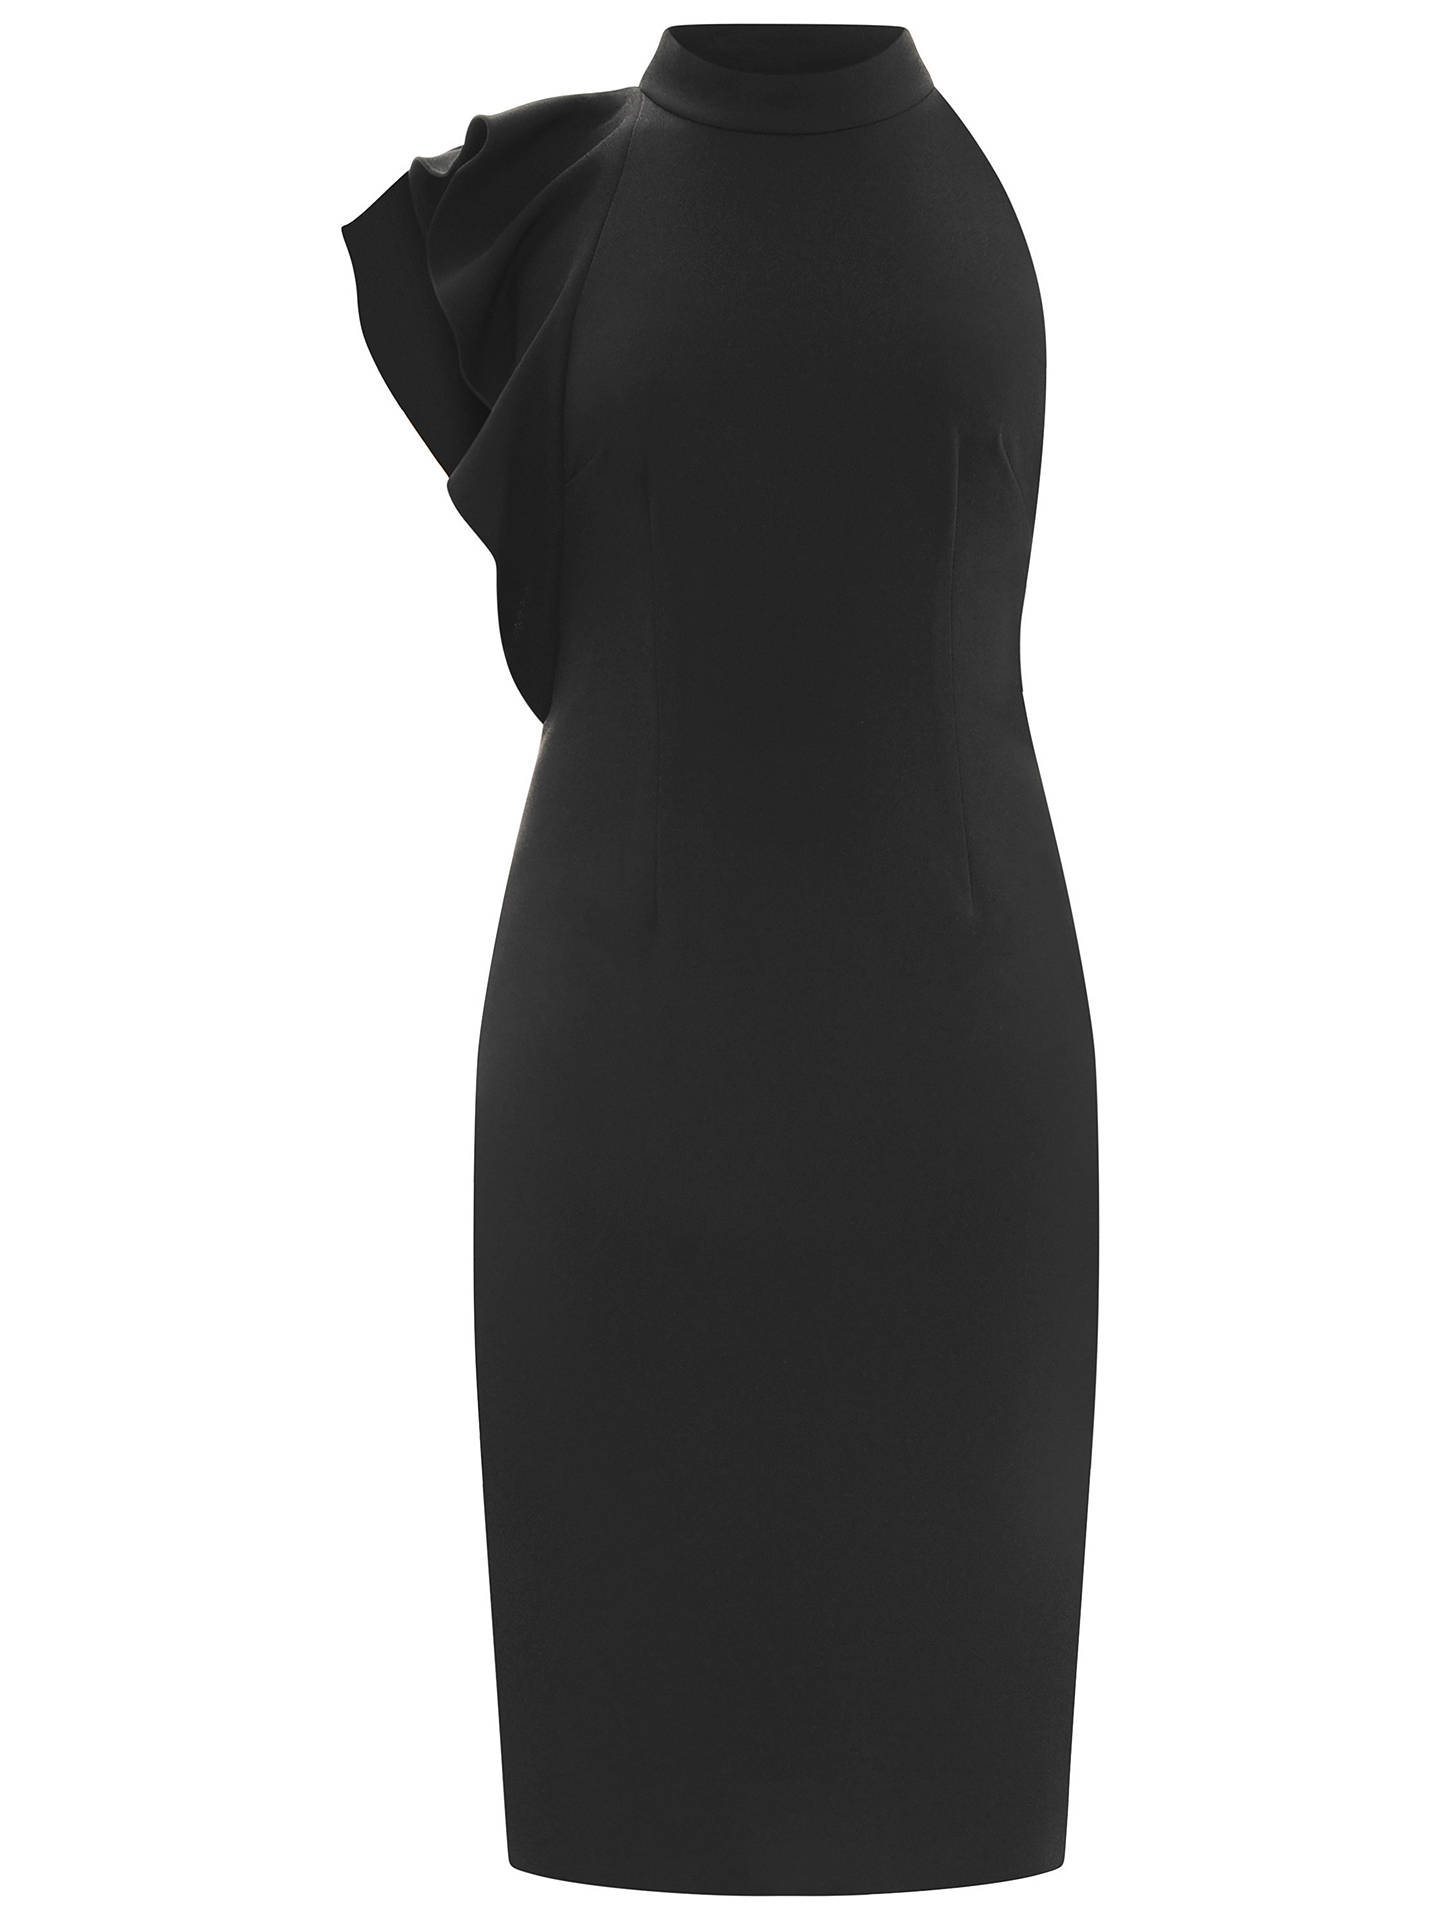 Buy Adrianna Papell Ruffle Halter Neck Crepe Dress, Black, 6 Online at johnlewis.com